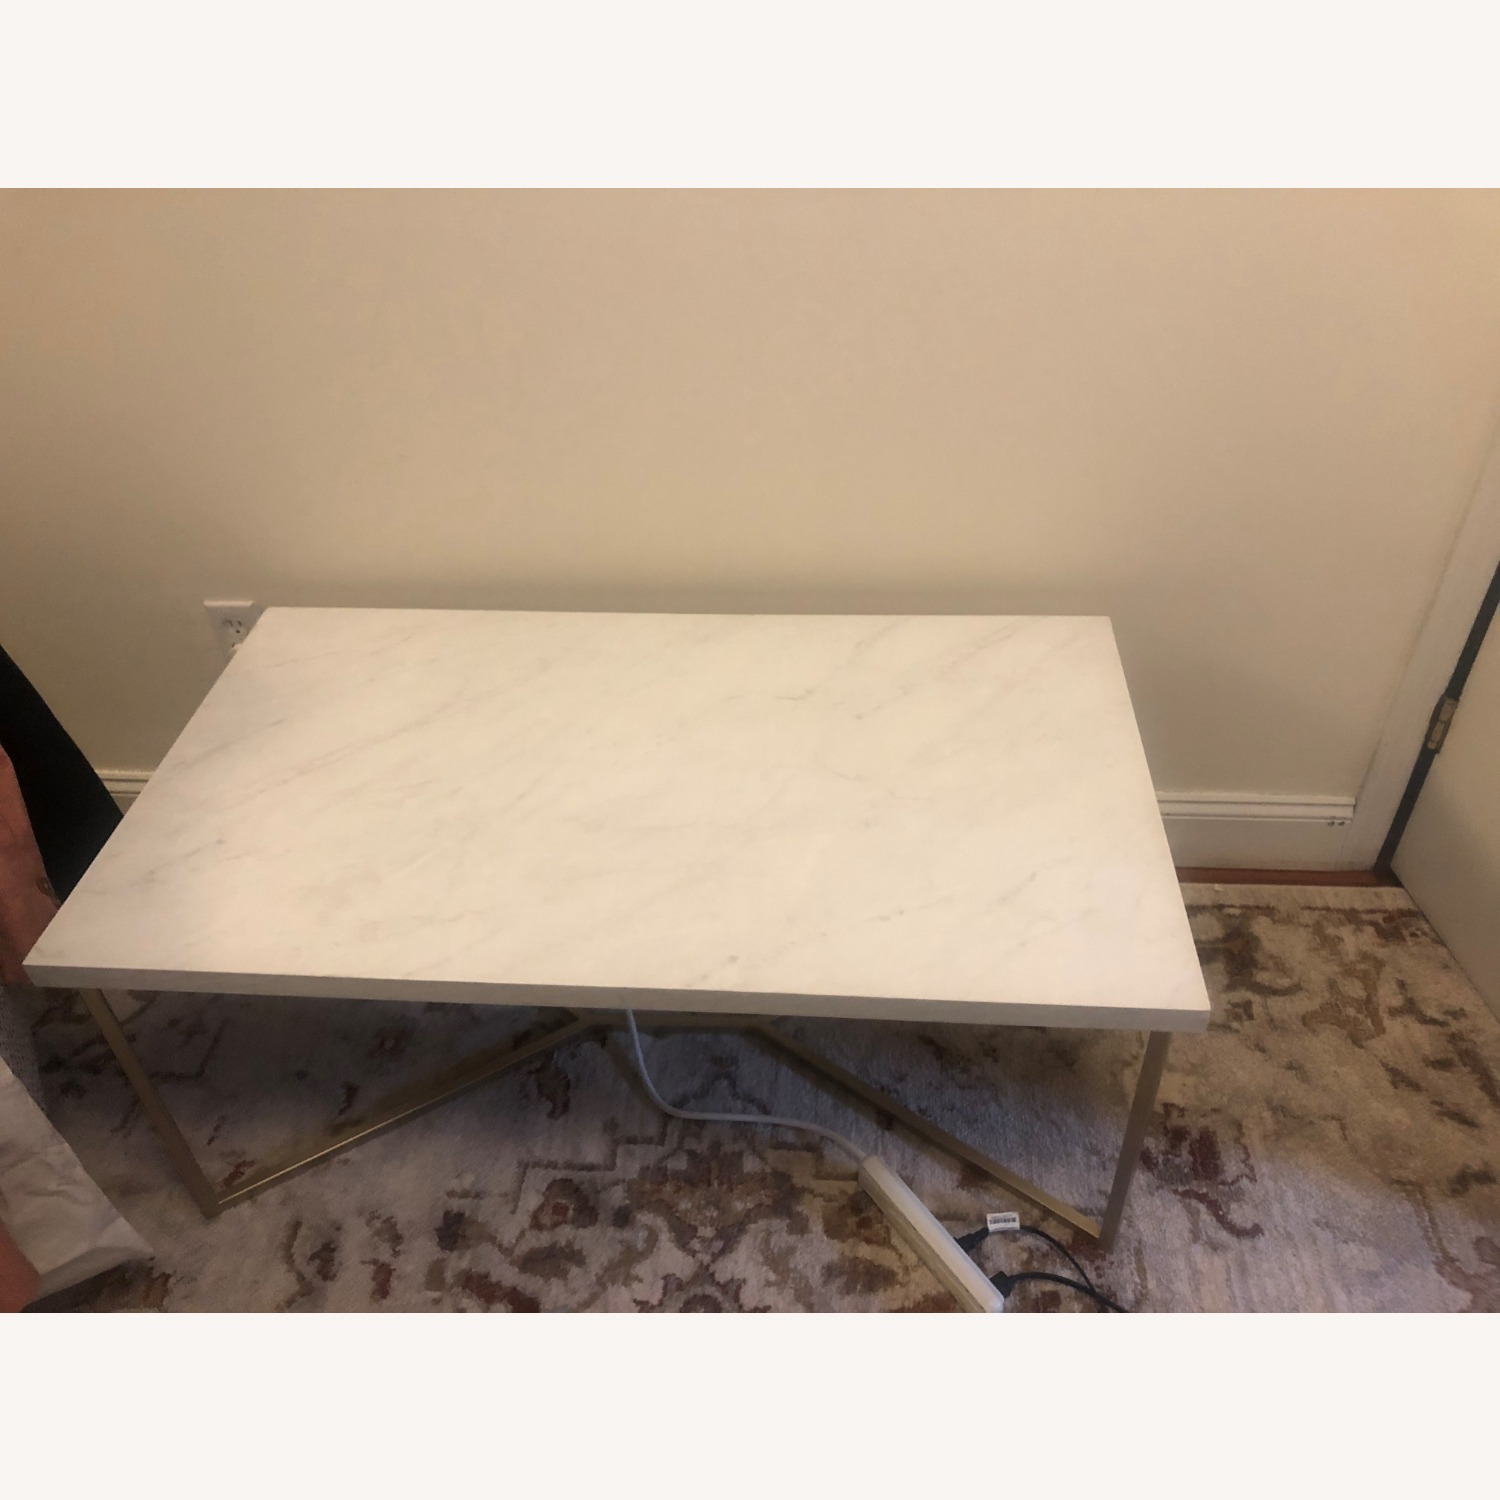 Wayfair Faux White Marble Coffee Table - image-3